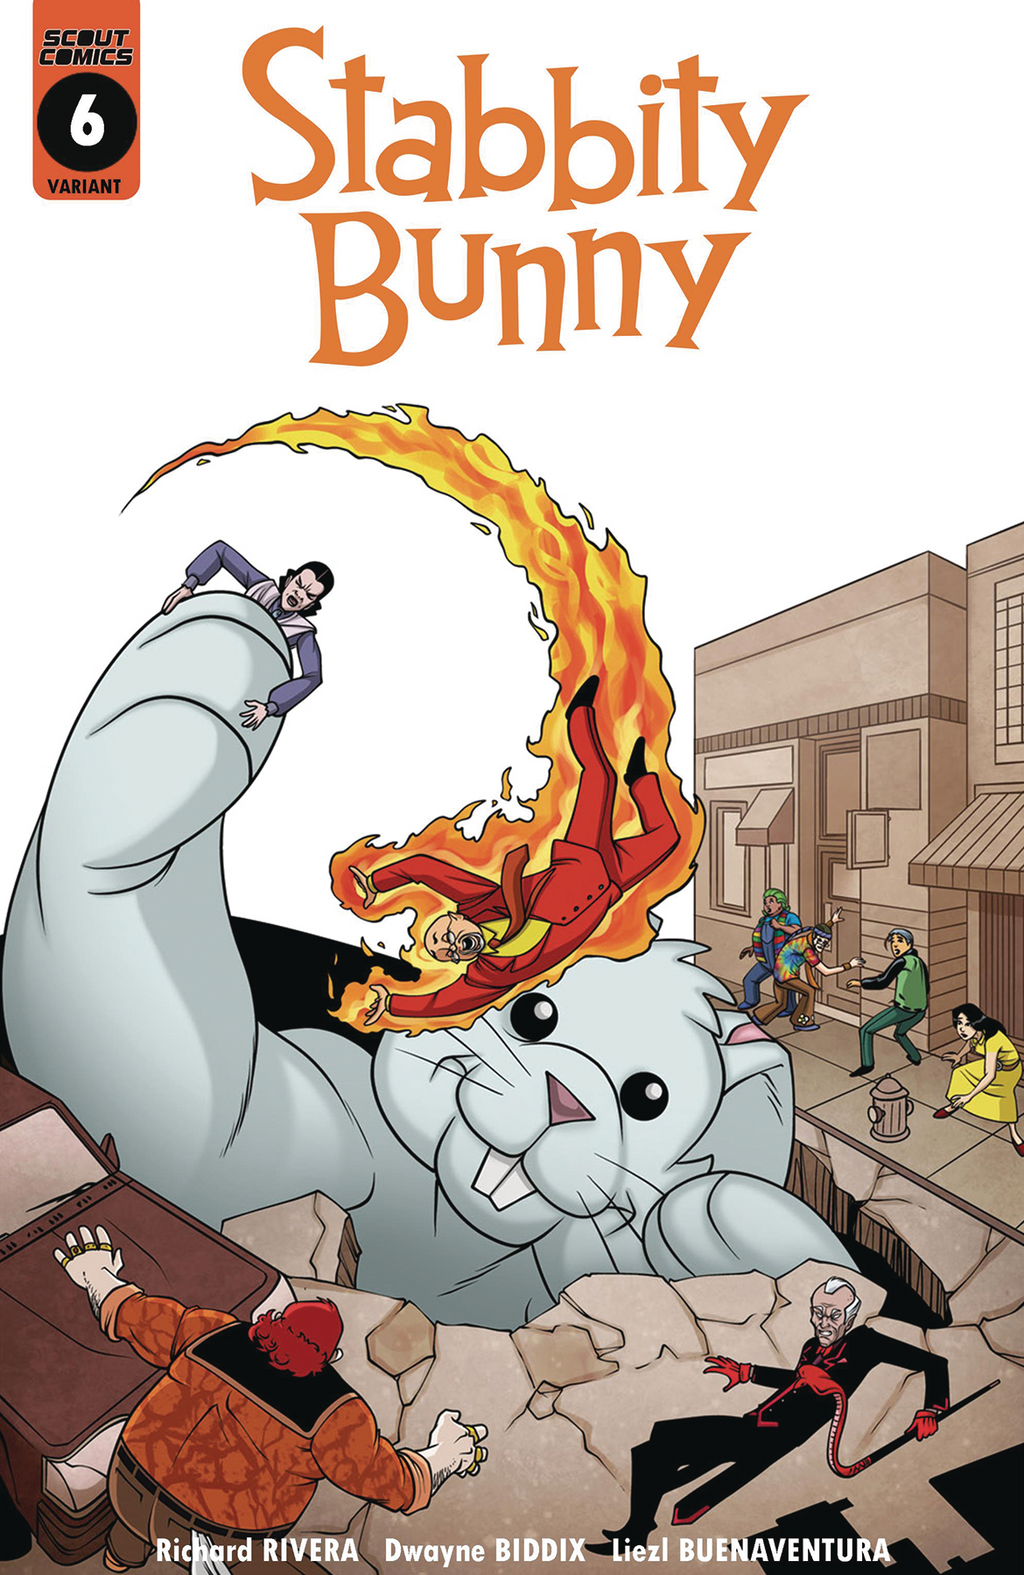 Stabbity Bunny #6 - Retailer Incentive Cover